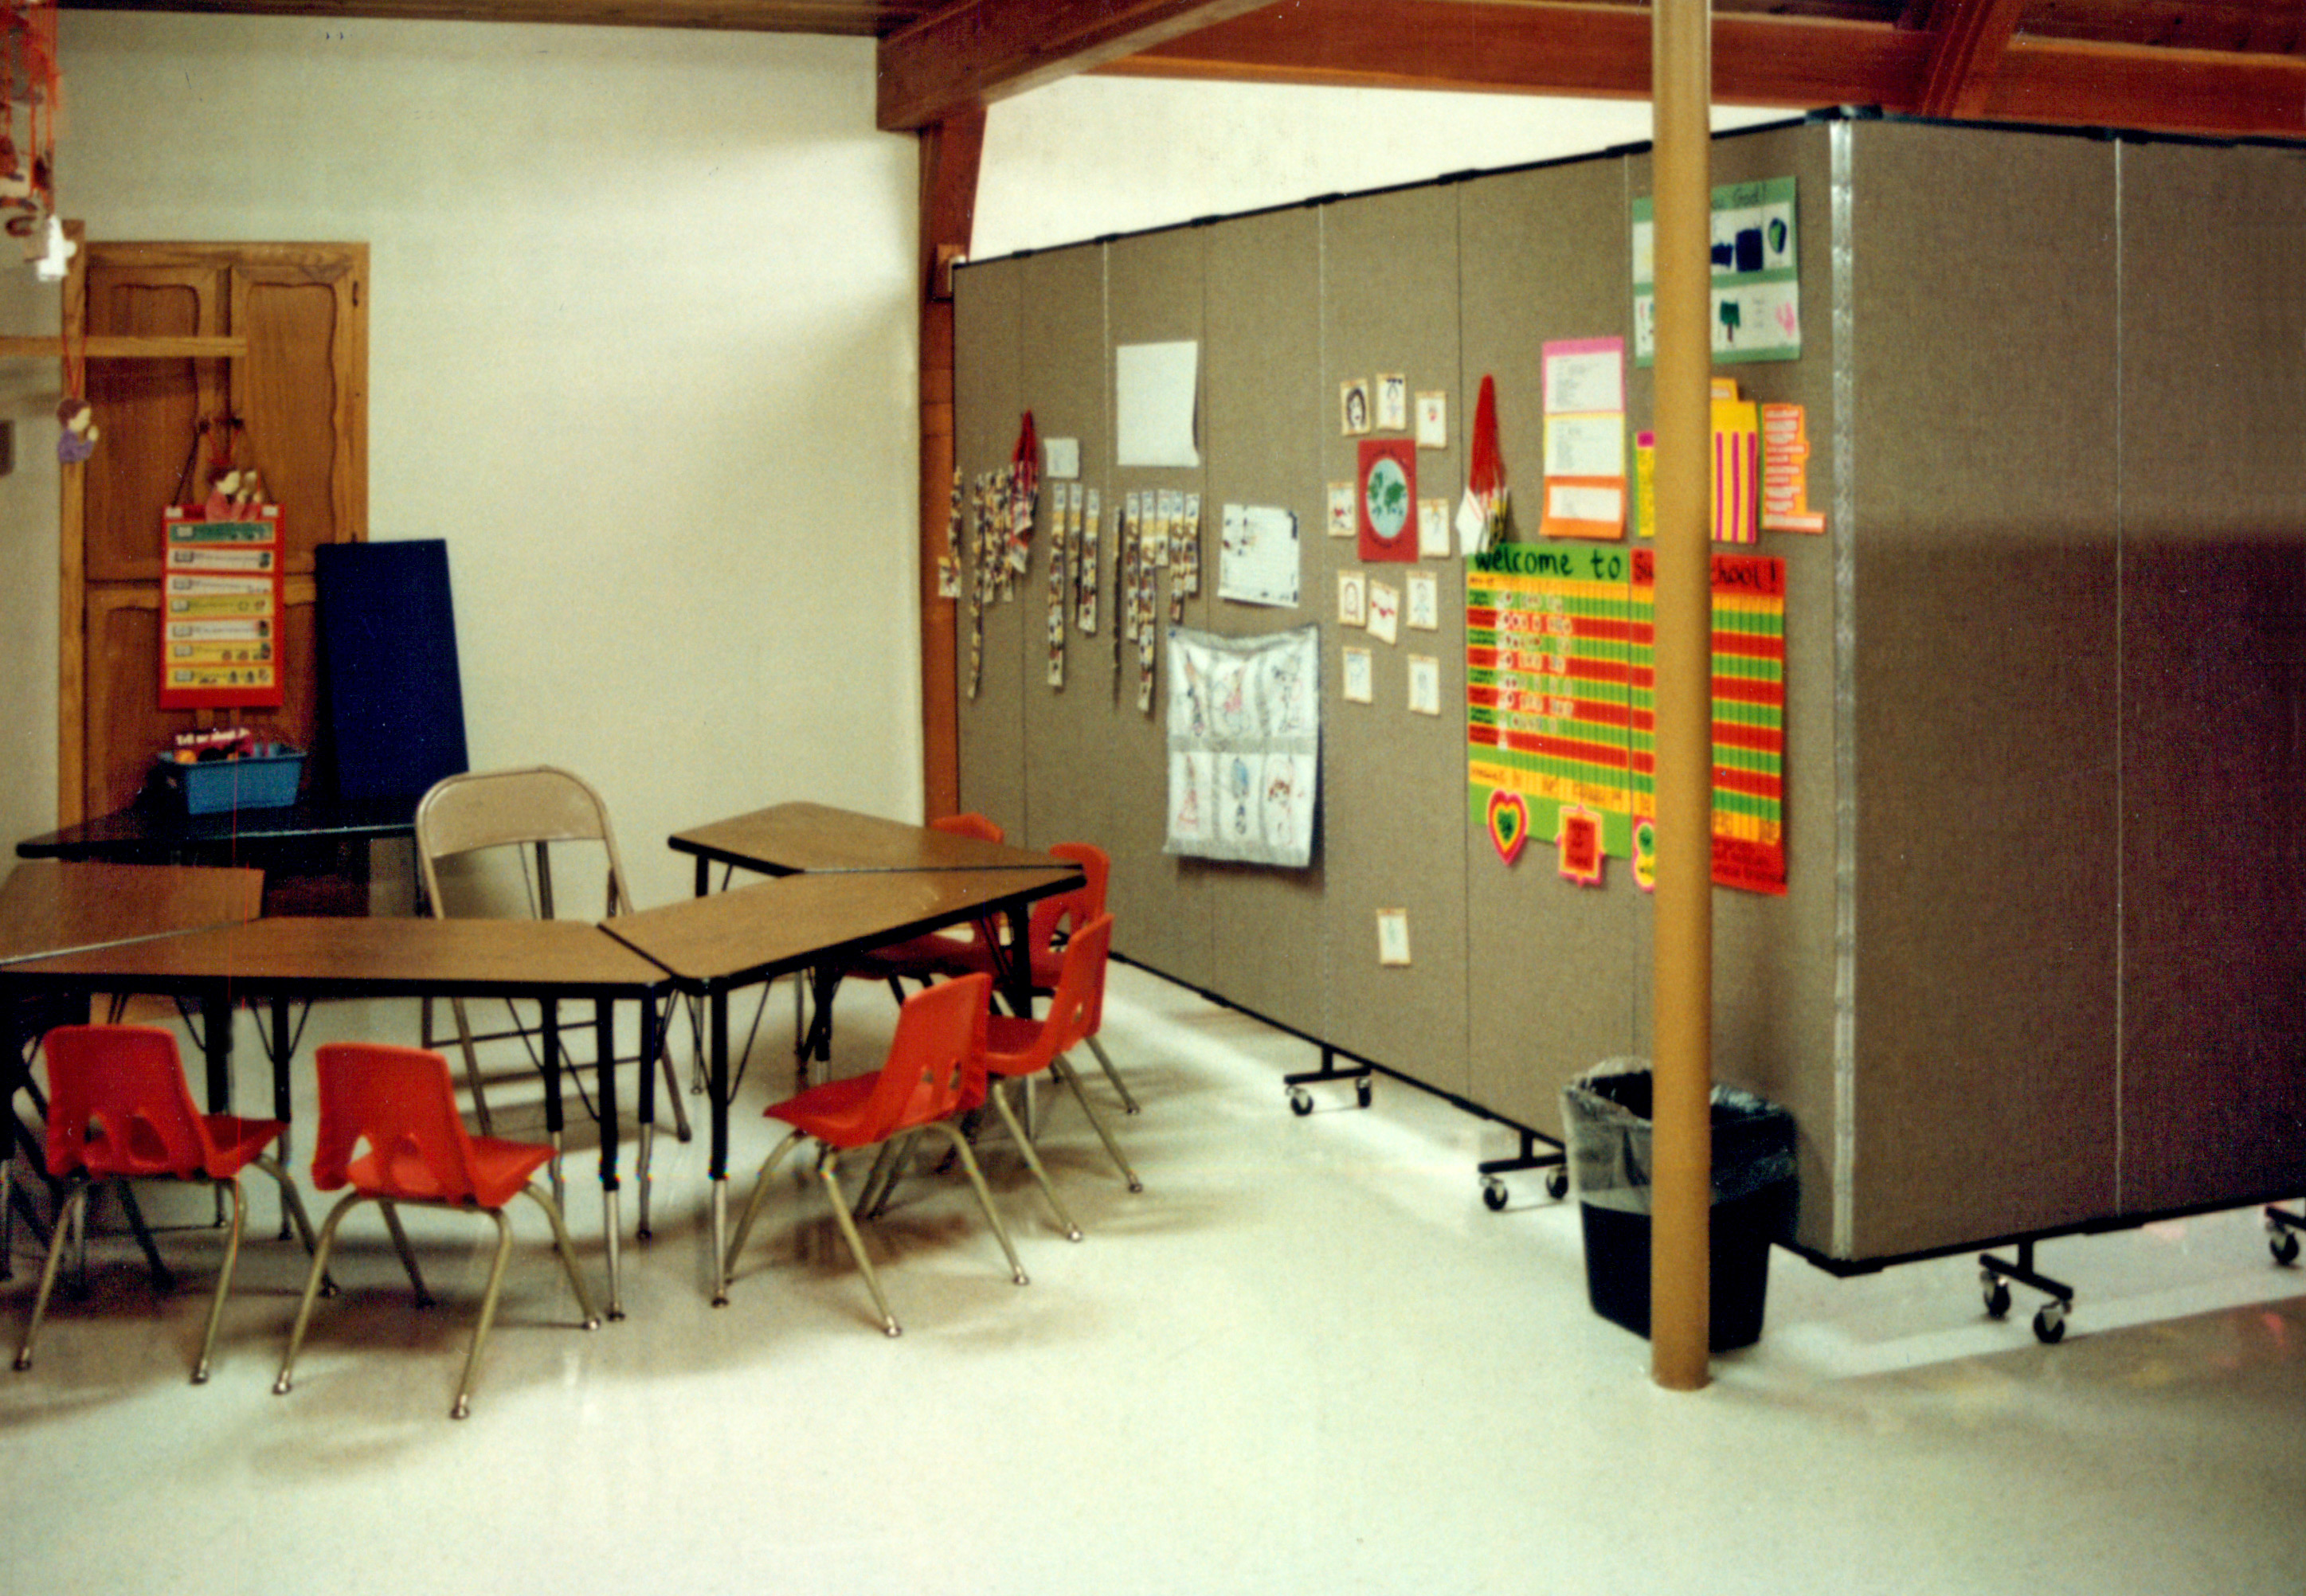 Student tables and chairs next to a room divider panel with educational material tacked to the fabric surface